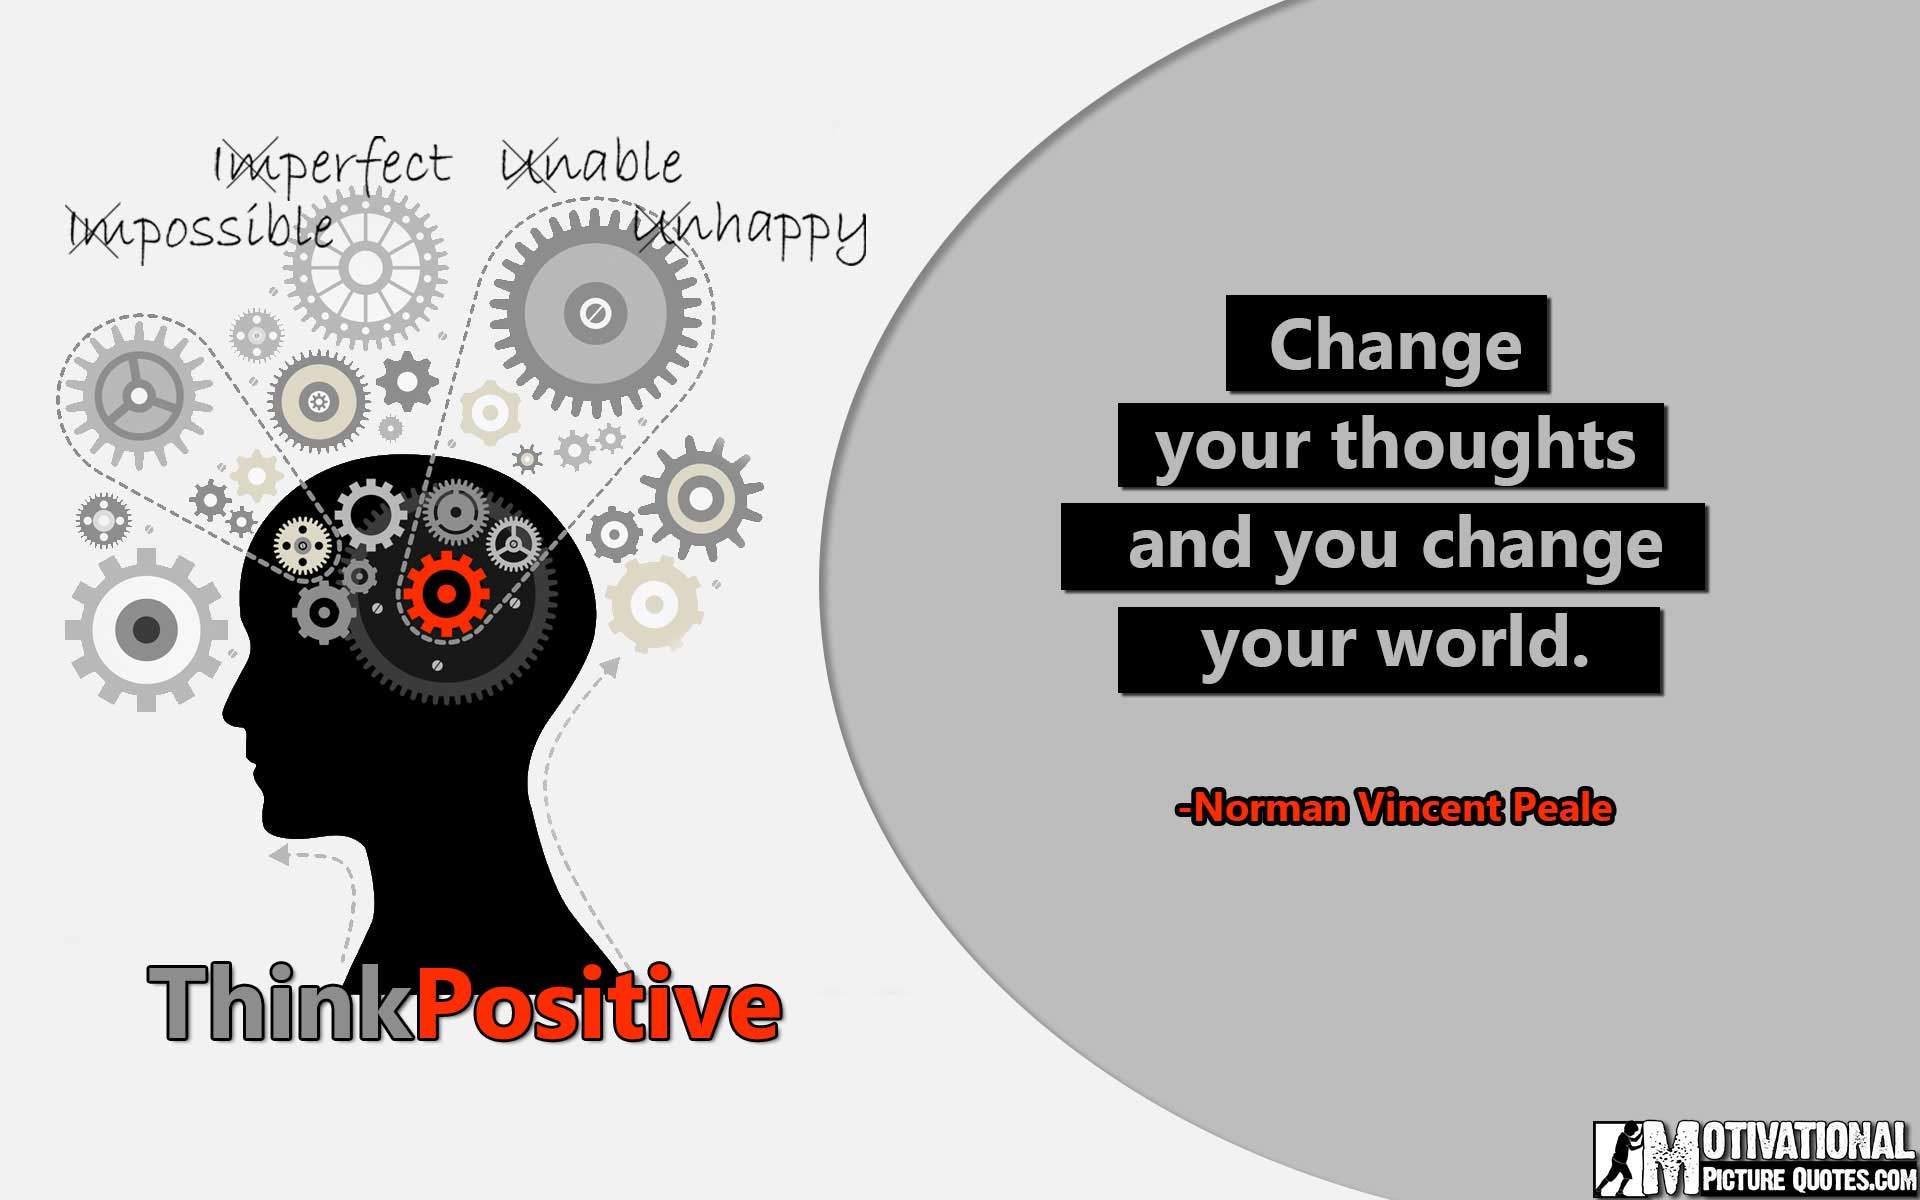 Power Of Positive Thinking Quotes The Power Of Positive Thinking Quotes With Pictures  Insbright